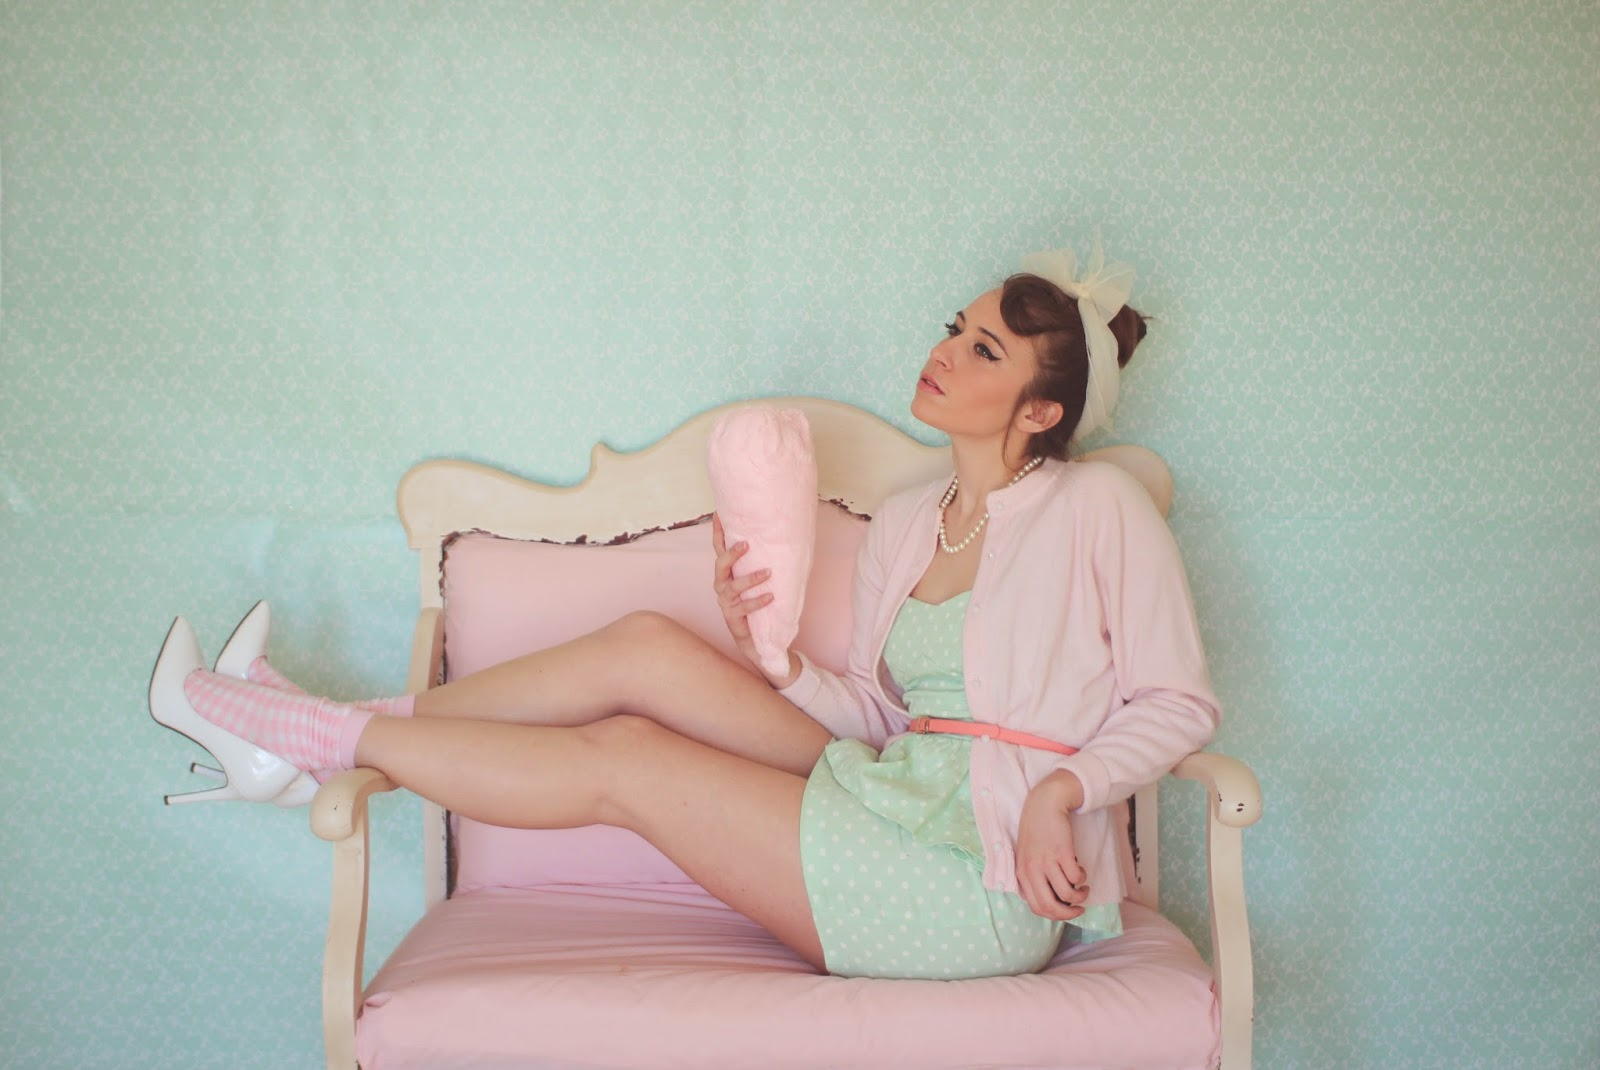 Retro, pastel, outfit, pink, green, mixed prints, cotton candy, girly, Drive, drive movie, femme fatale, sweet, vintage, DIY, backdrop, spring